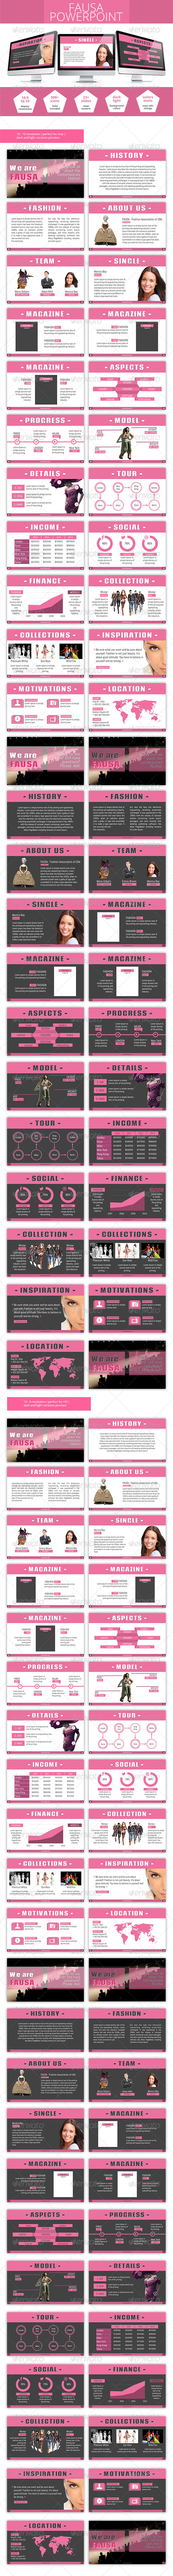 GraphicRiver Fausa Powerpoint Presentation 5956613